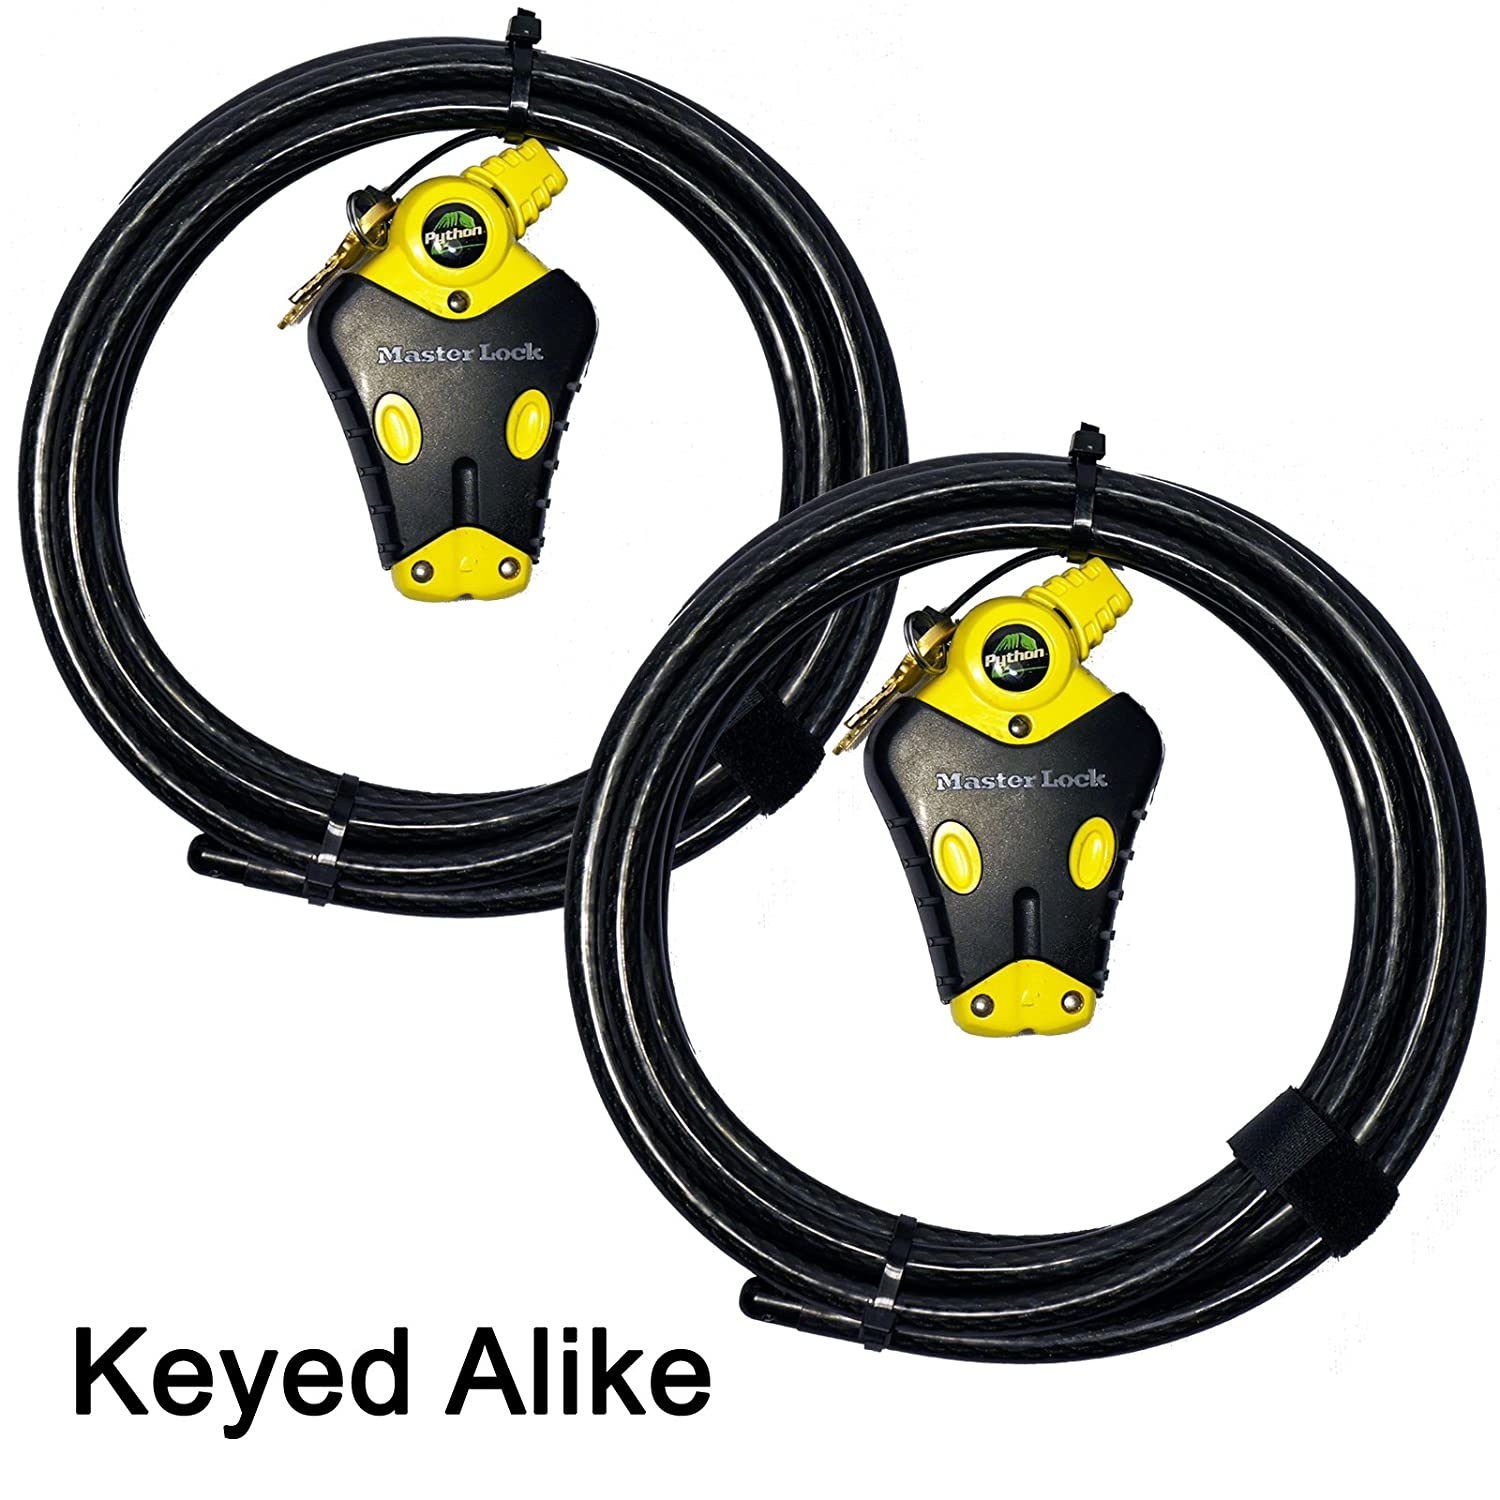 Master Lock – Two 12 ft Python Adjustable Cable Locks Keyed Alike, 8413KACBL-1212